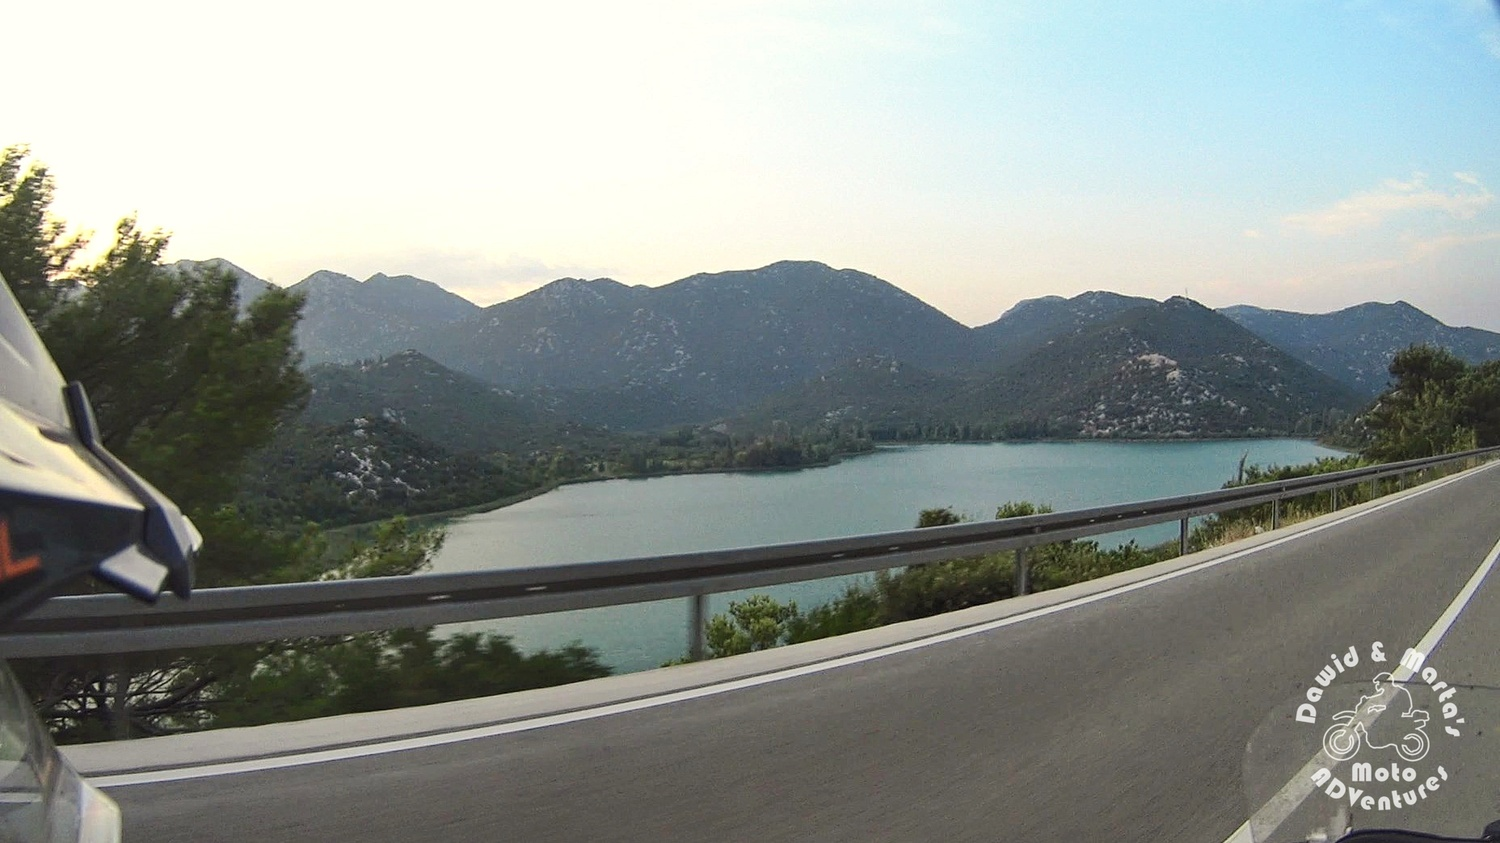 Bacina Lakes seen from the Adriatic Highway, around the Neretva River wetlands